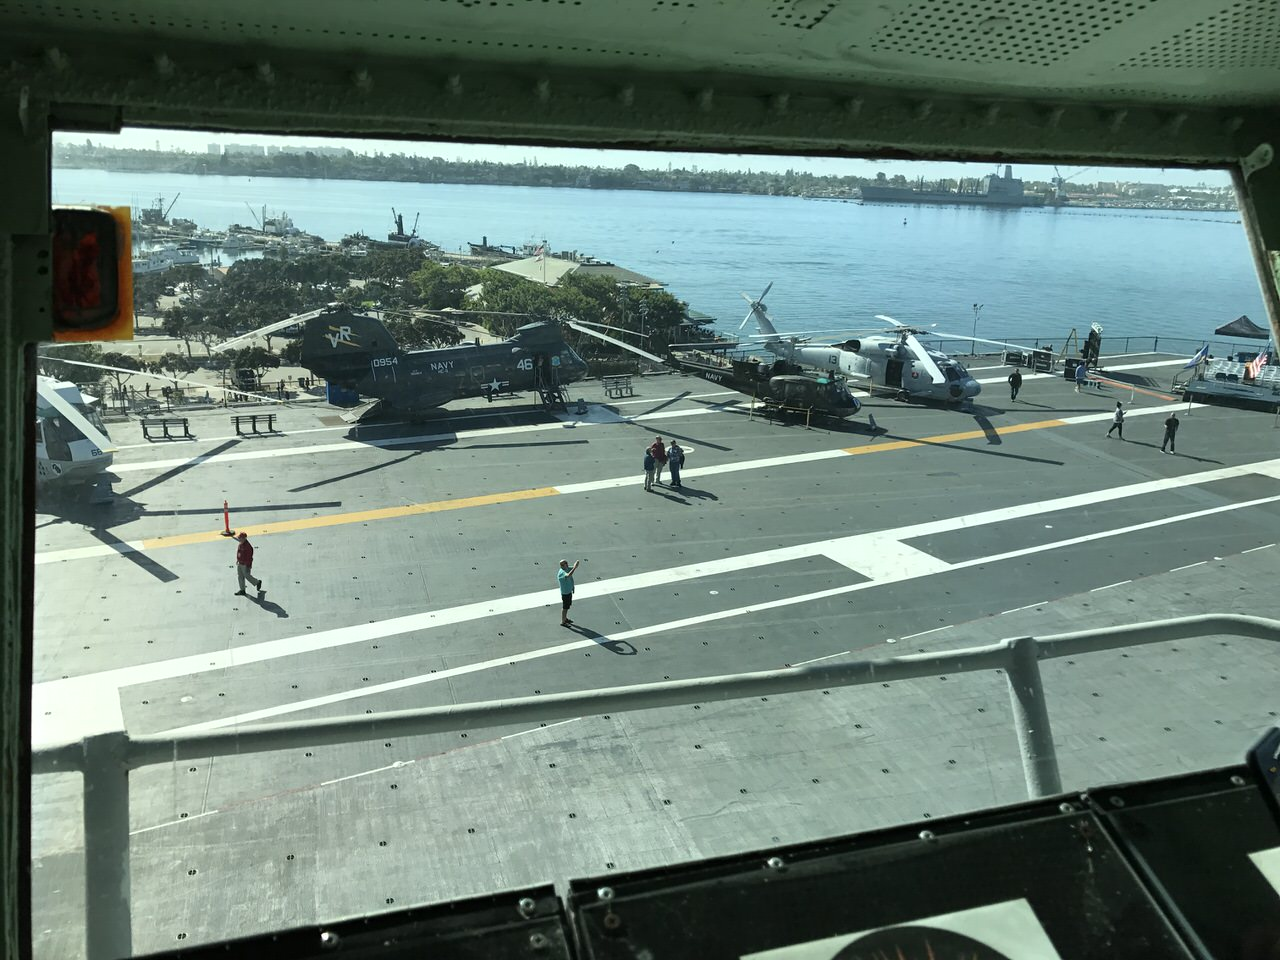 Uss midway museum 0572